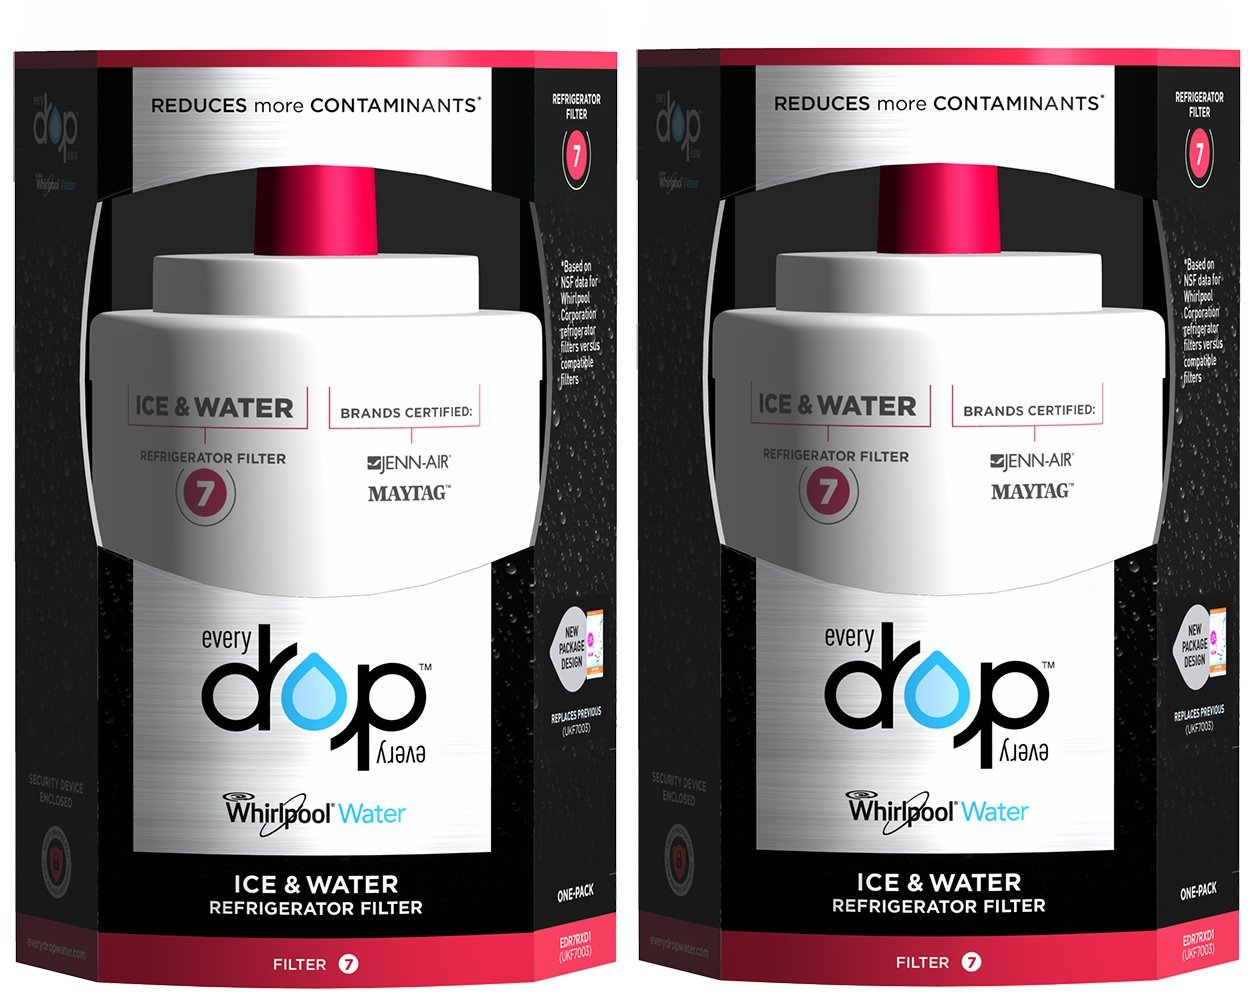 EveryDrop by Whirlpool Refrigerator Water Filter 7 (Pack of 2) by EveryDrop by Whirlpool (Image #1)